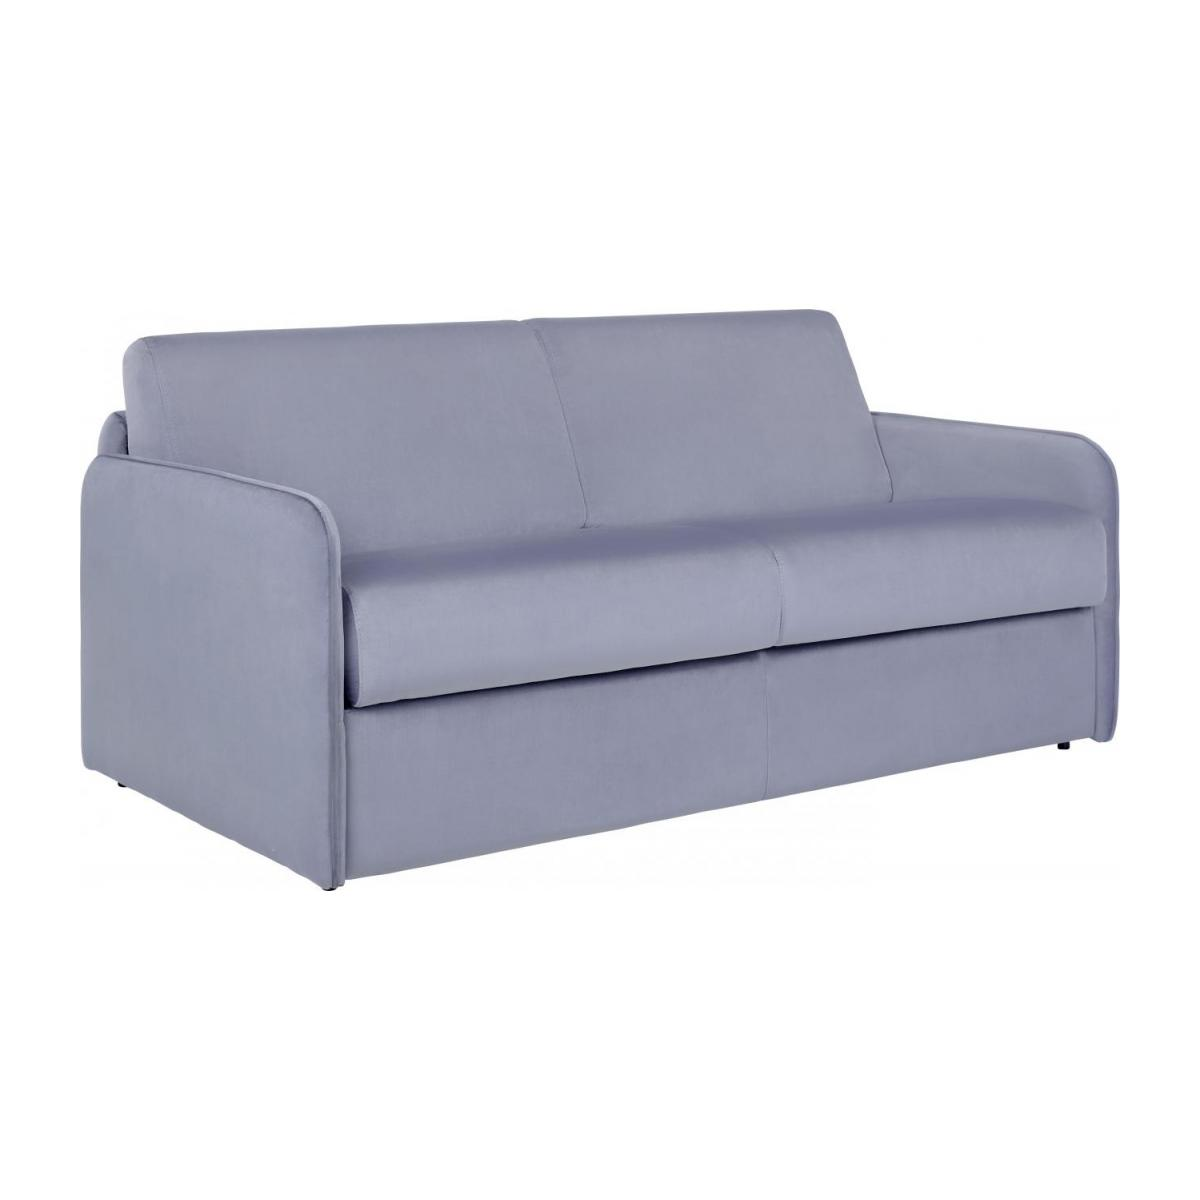 Grey velvet 3 seat fold-out sofa n°1